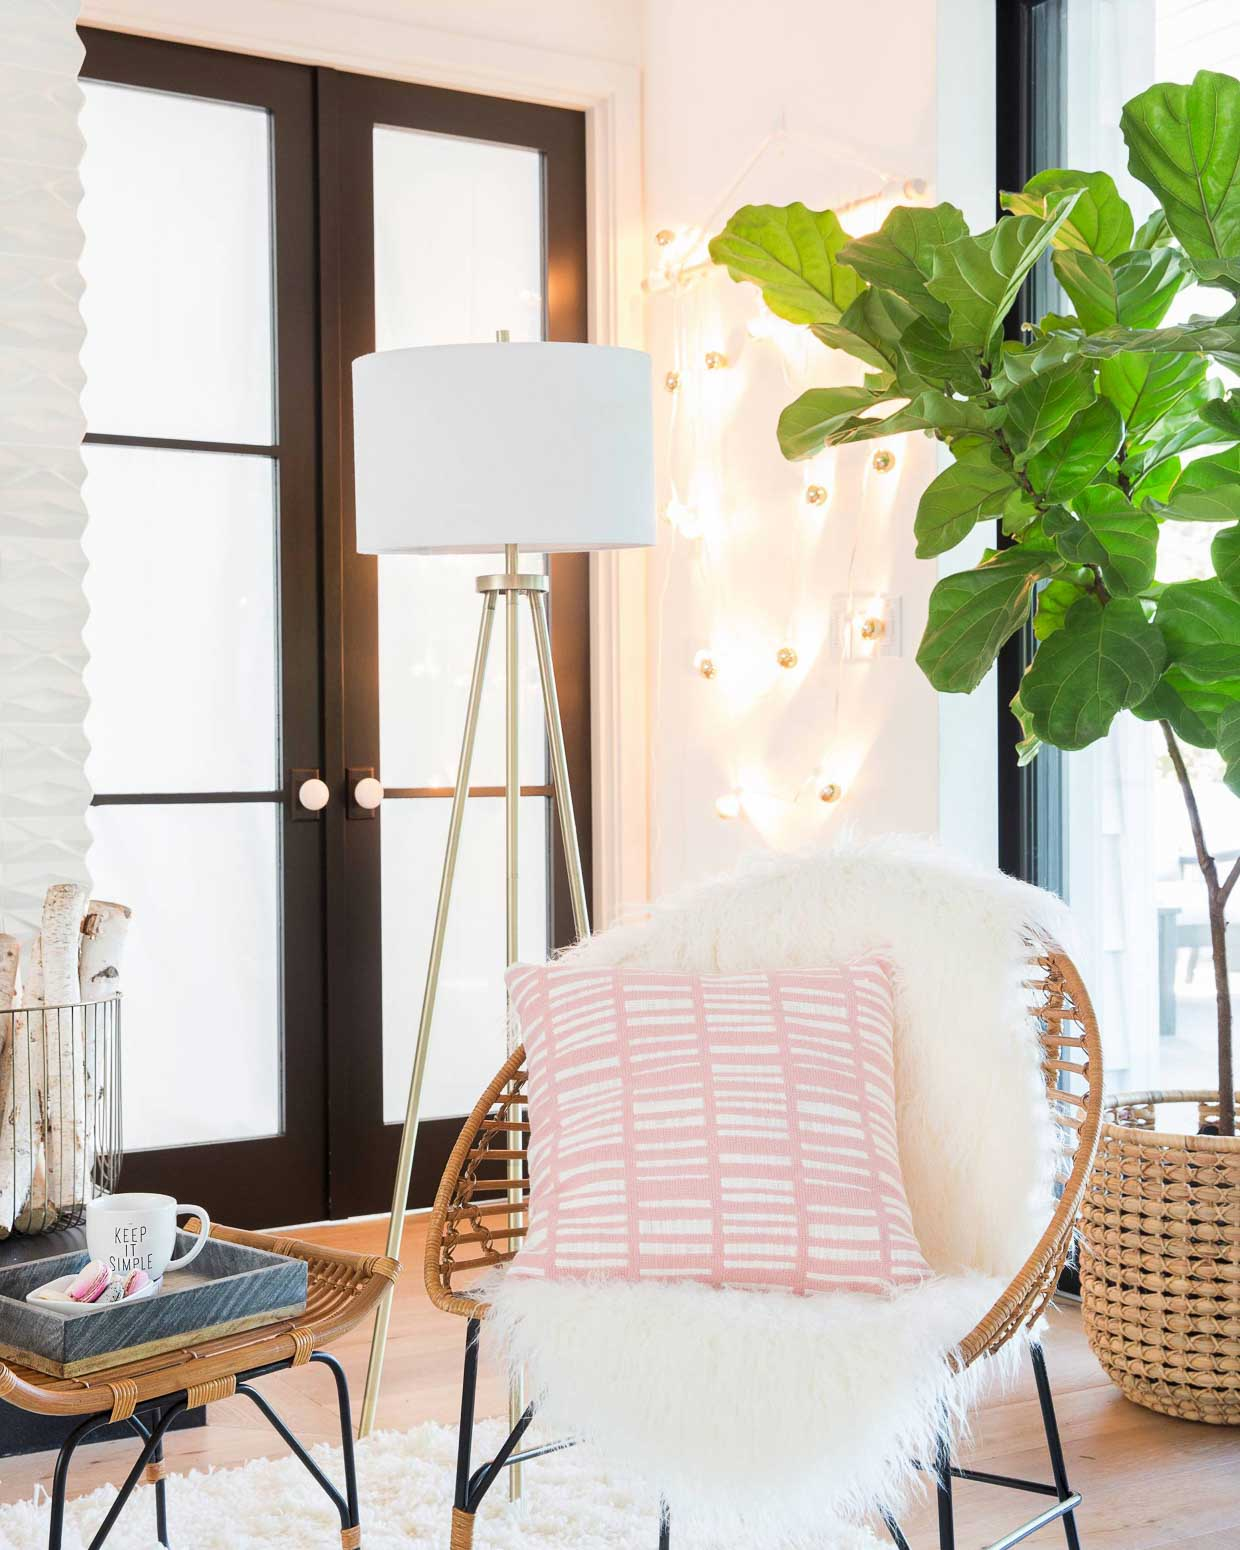 Target Home Decor  Home Decorating On A Budget  Poor